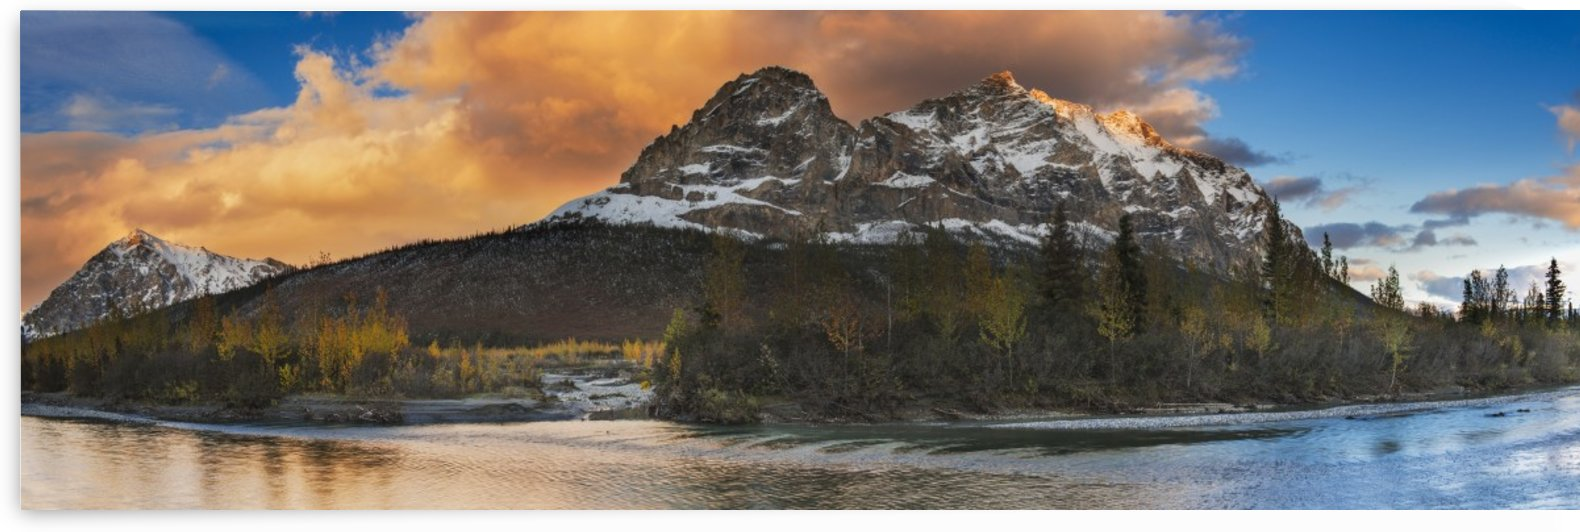 Panoramic scenic of Mt. Sukakpak at sunset along the Middle Fork of the Koyukuk River in the Brooks Range, Arctic Alaska, Autumn by PacificStock